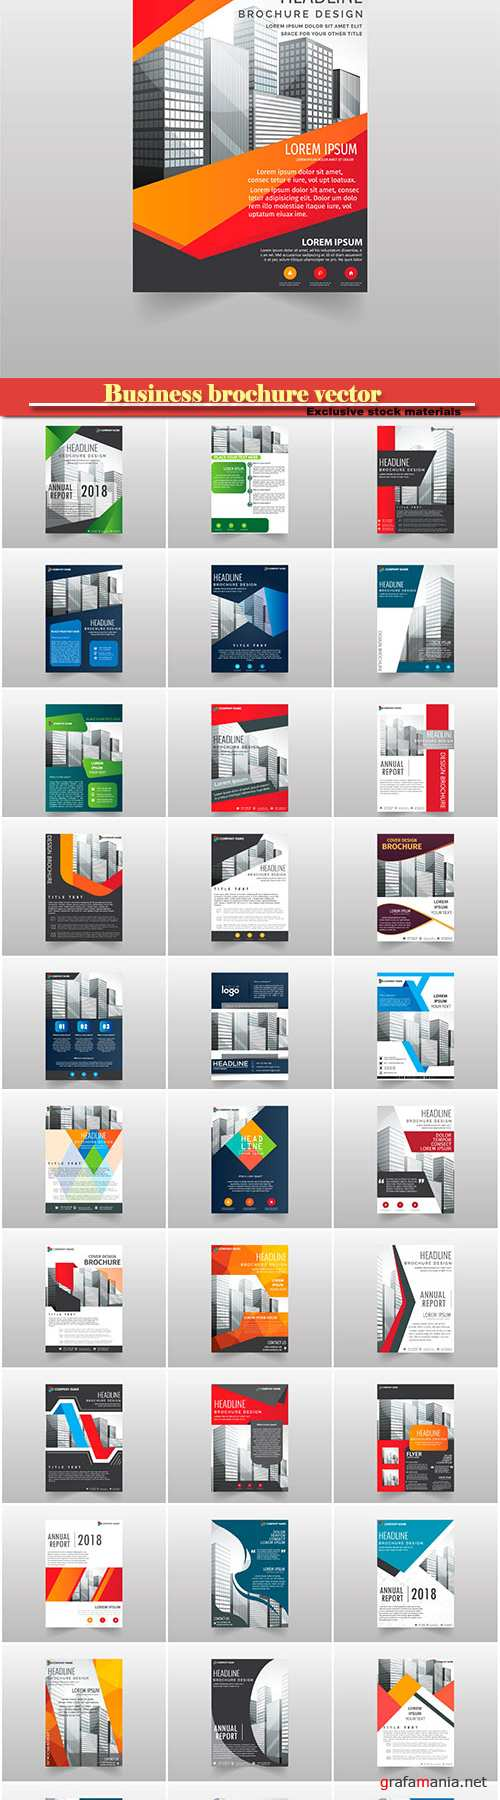 Business brochure vector, flyers templates # 21